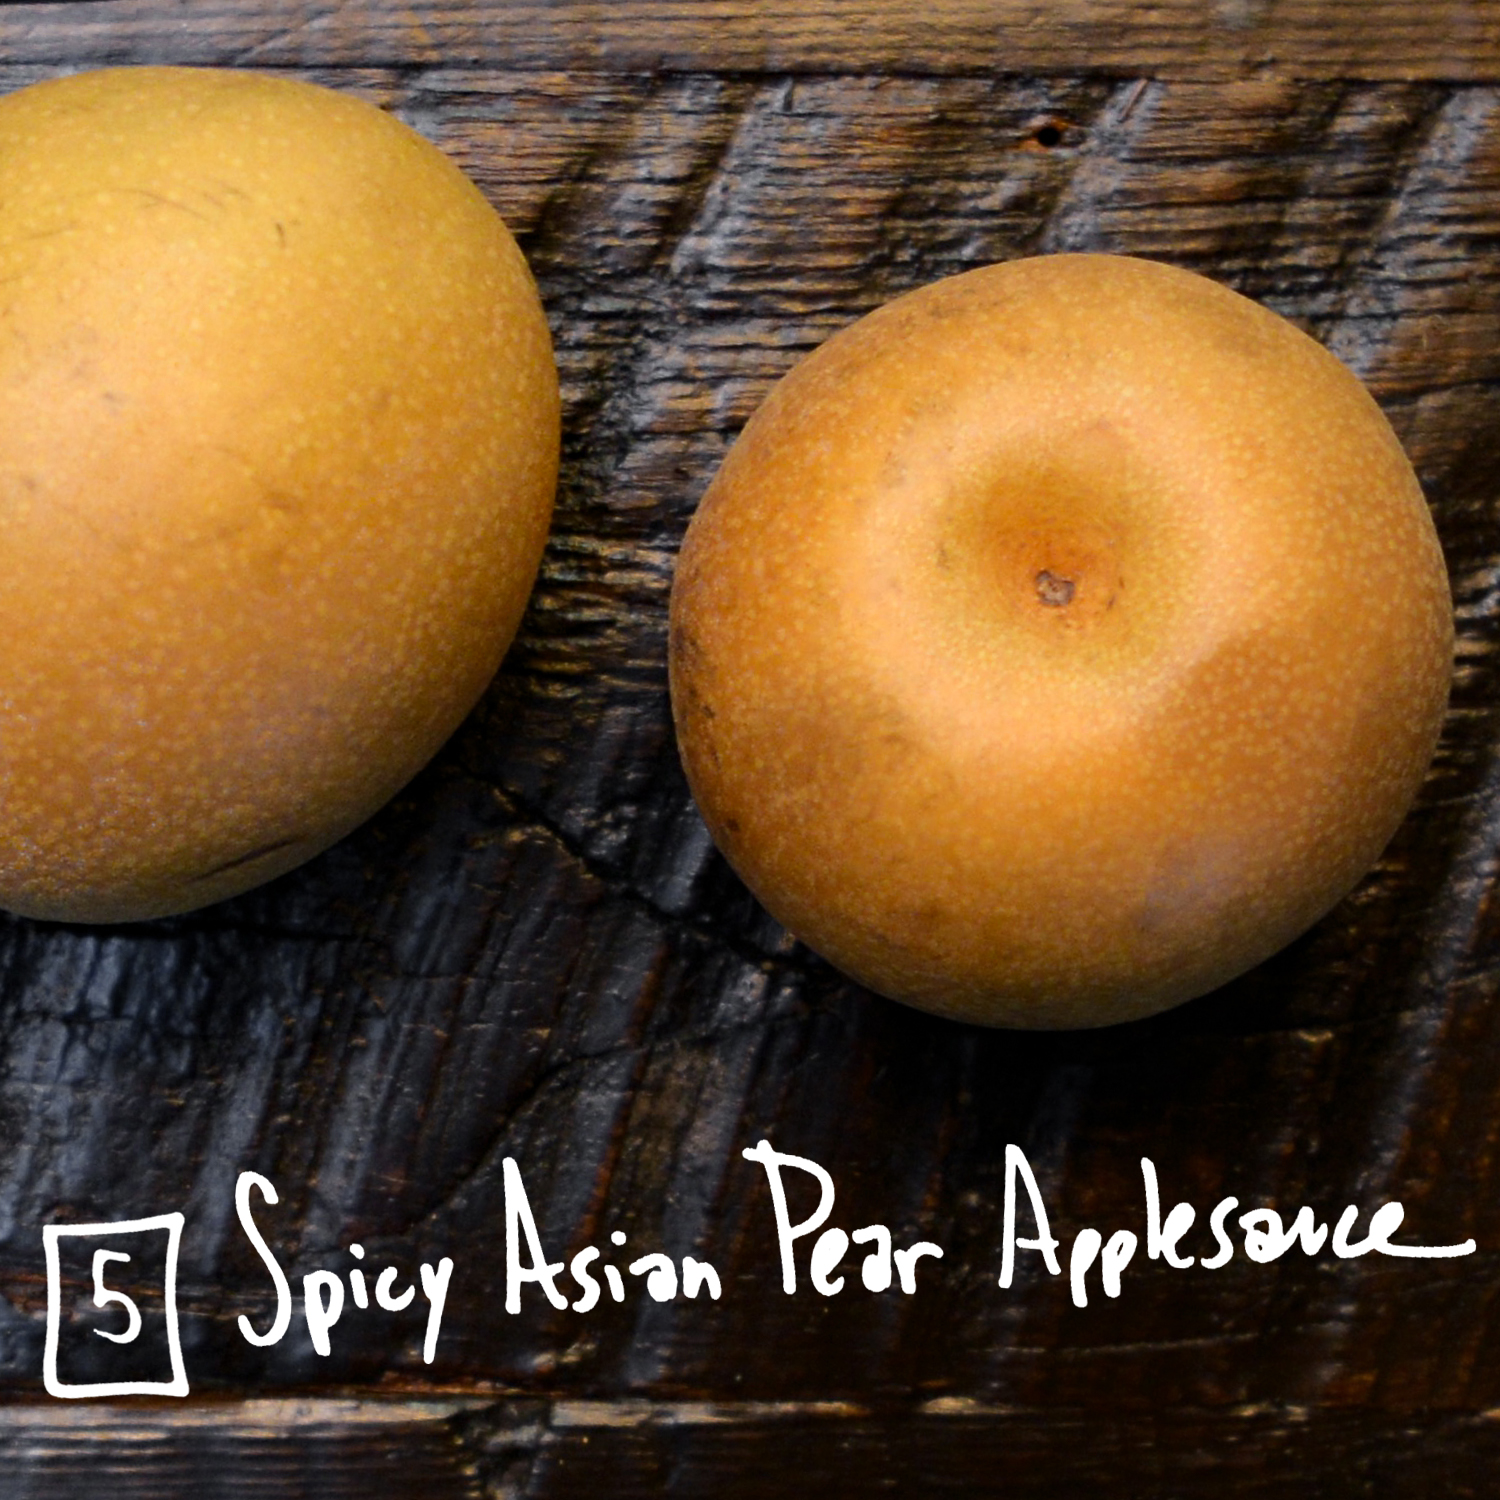 Only three steps to Chai-spice inspired applesauce that will make your house smell amazing. - Find the recipe at: Side Chef